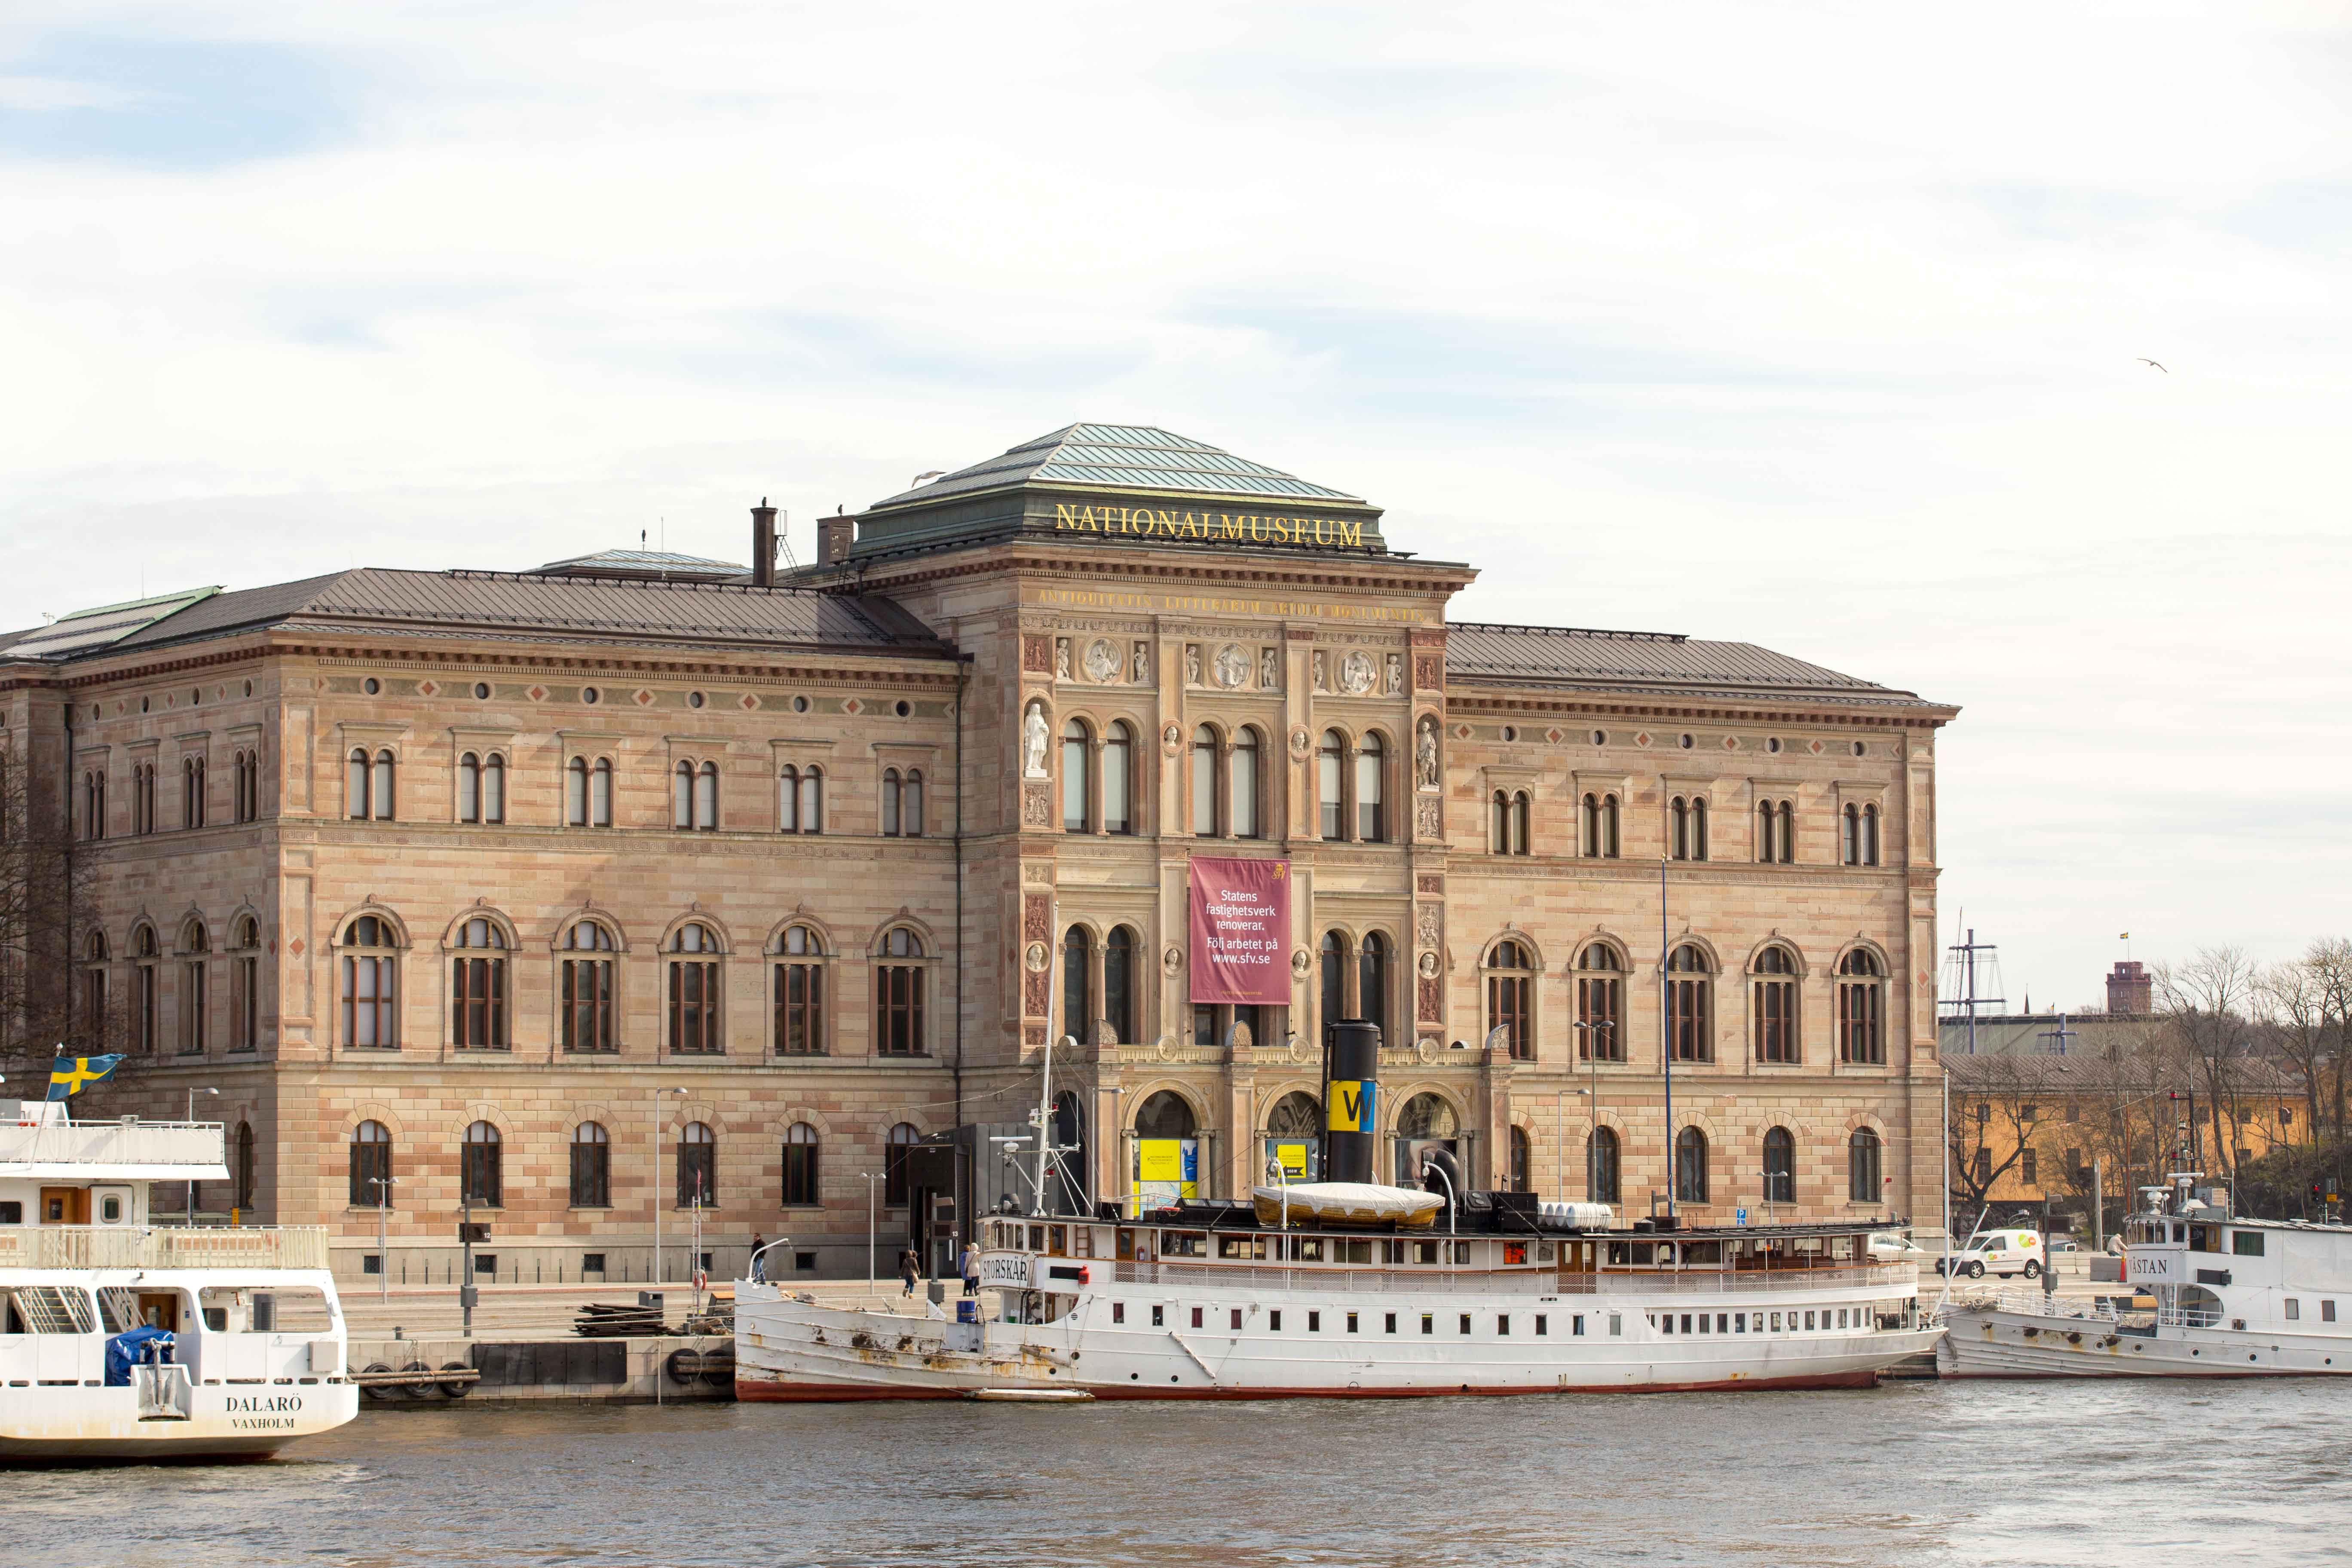 National Museum Norrmalm Stockholm